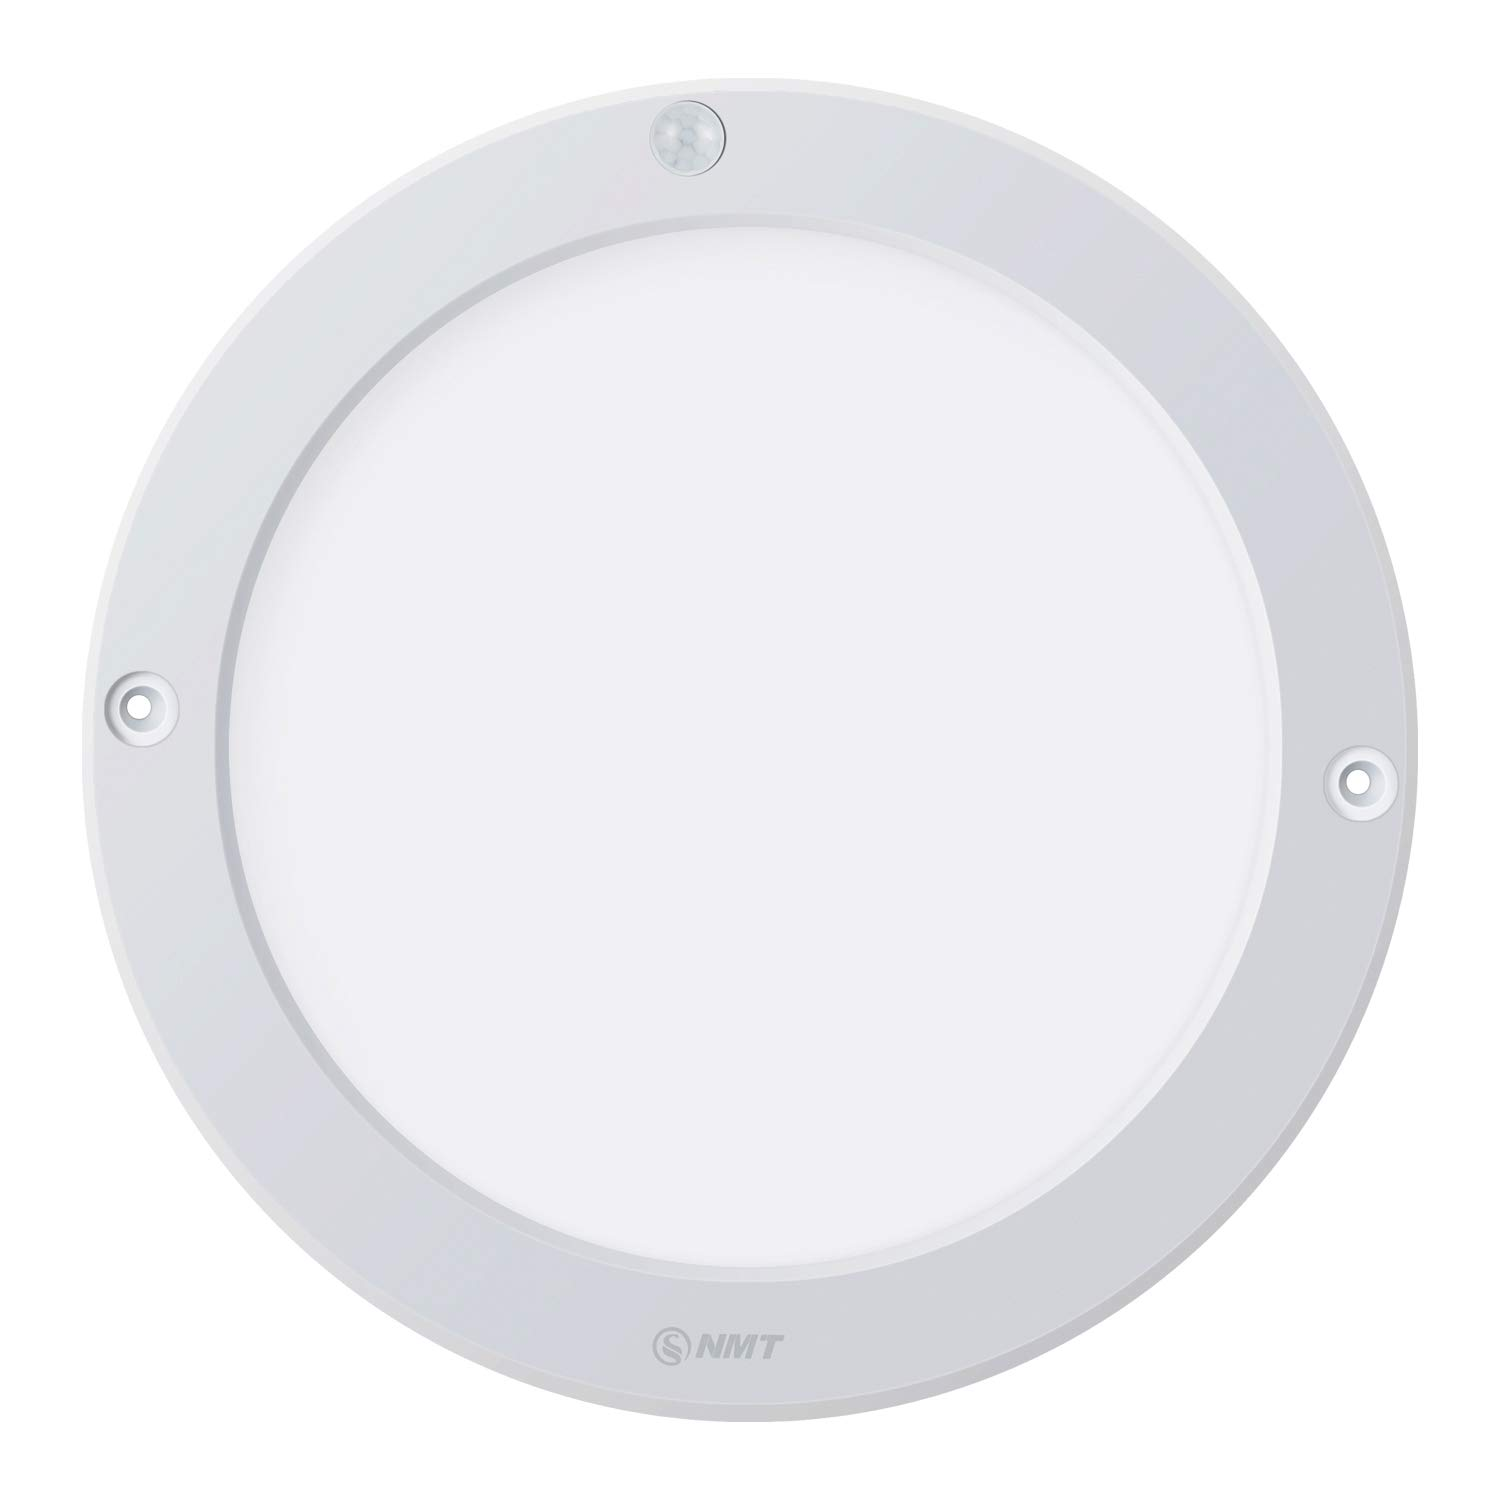 "LED Panel Light PIR Motion Sensor for Day/Night Body Detector Ceiling Surface Mounted Lights 15W 1200LM 3000K Φ8.66"" Round Flush Mount Light For Corridor Stairs Depot Bathroom Toilet Room (Warm White)"